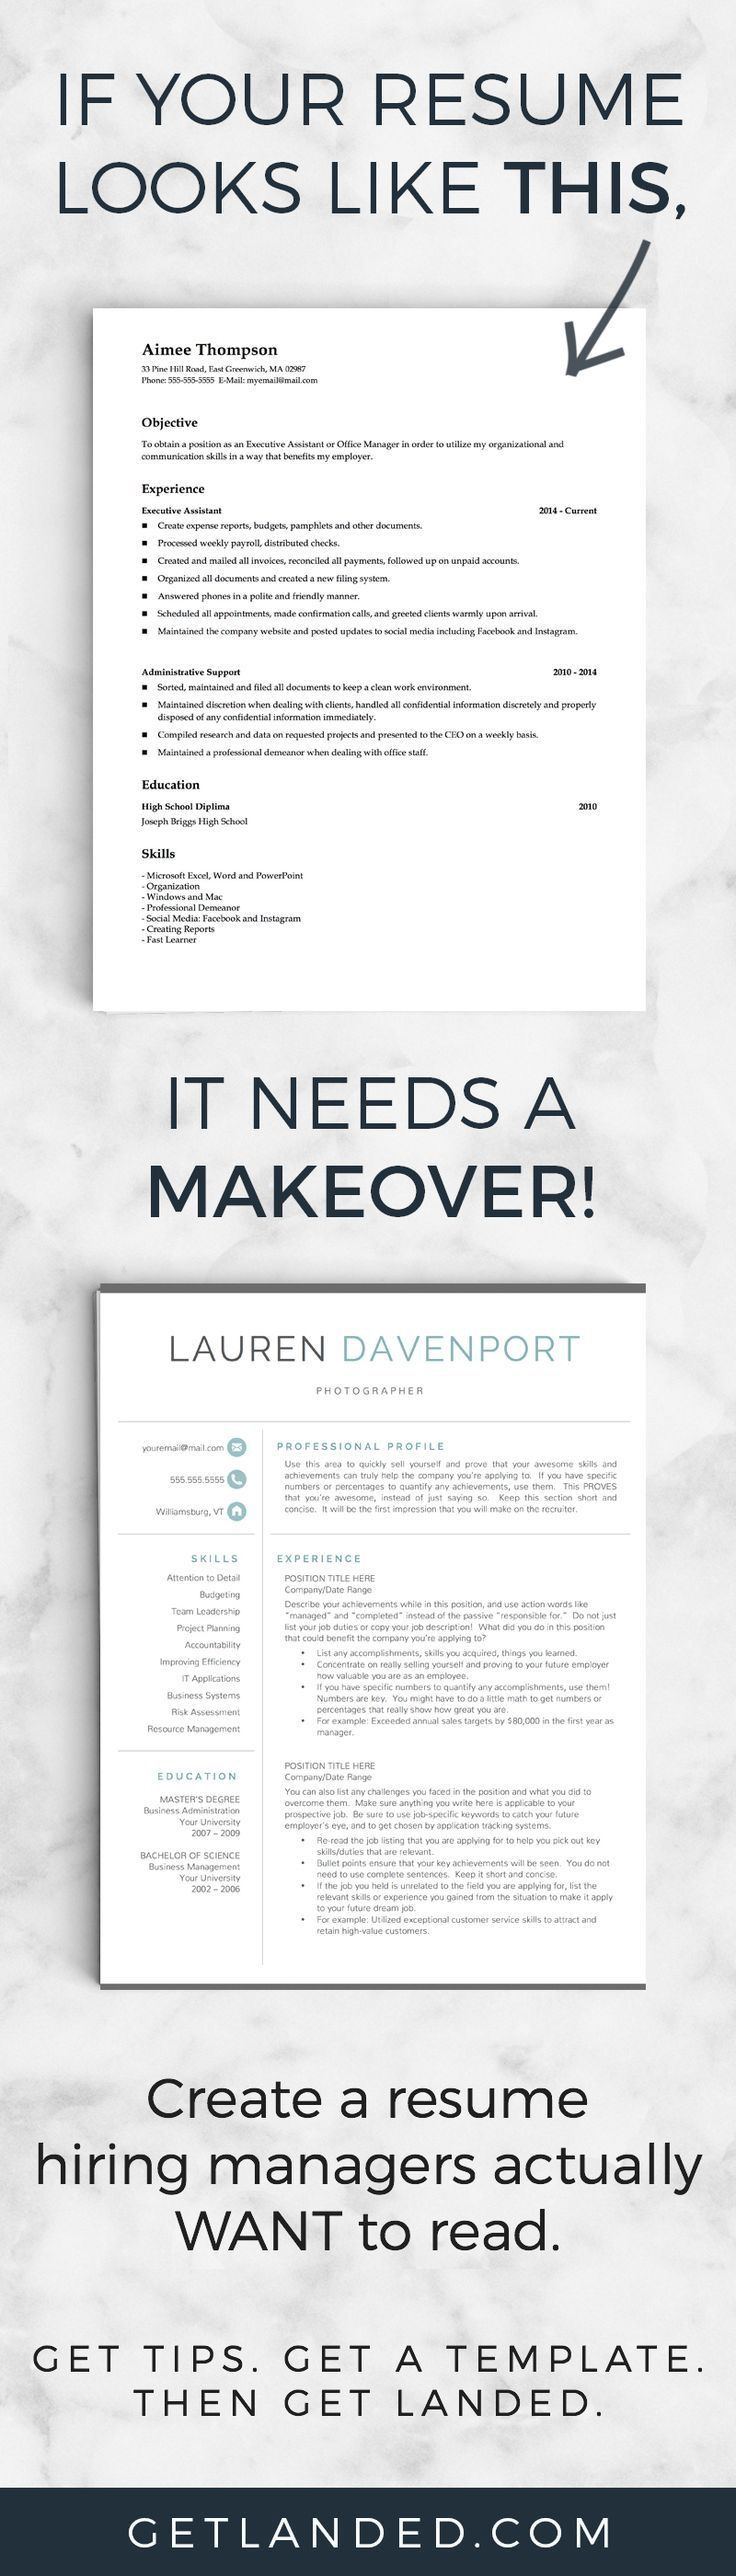 Get A Resume Makeover Today With A Resume Template And Resume Writing Tips  That Will Transform Your Resume Into Something Hiring Managers Actually  Want To ...